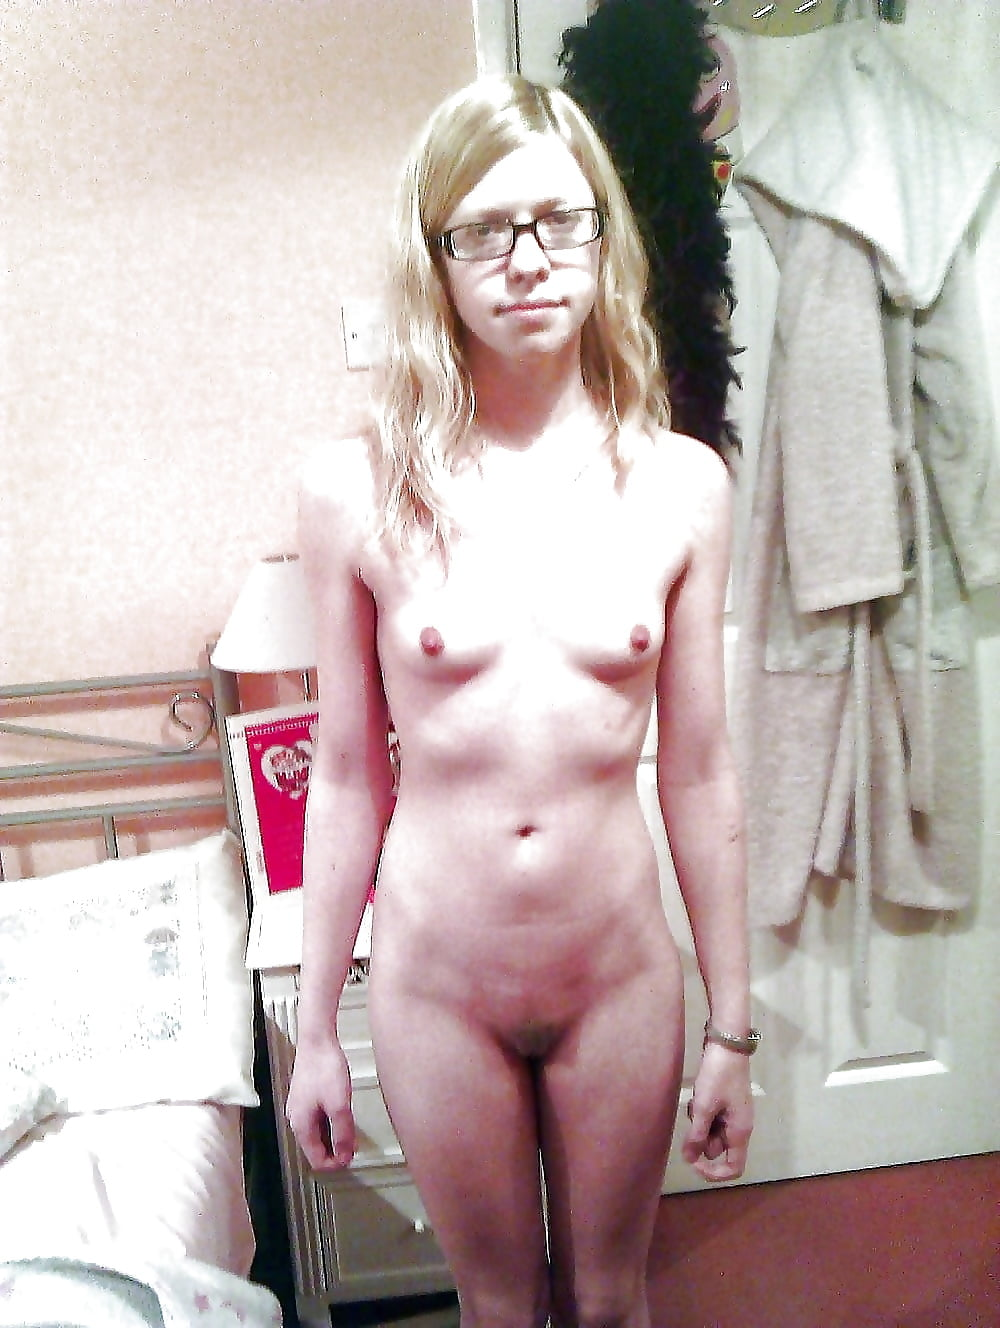 Ugly girl xxx photos